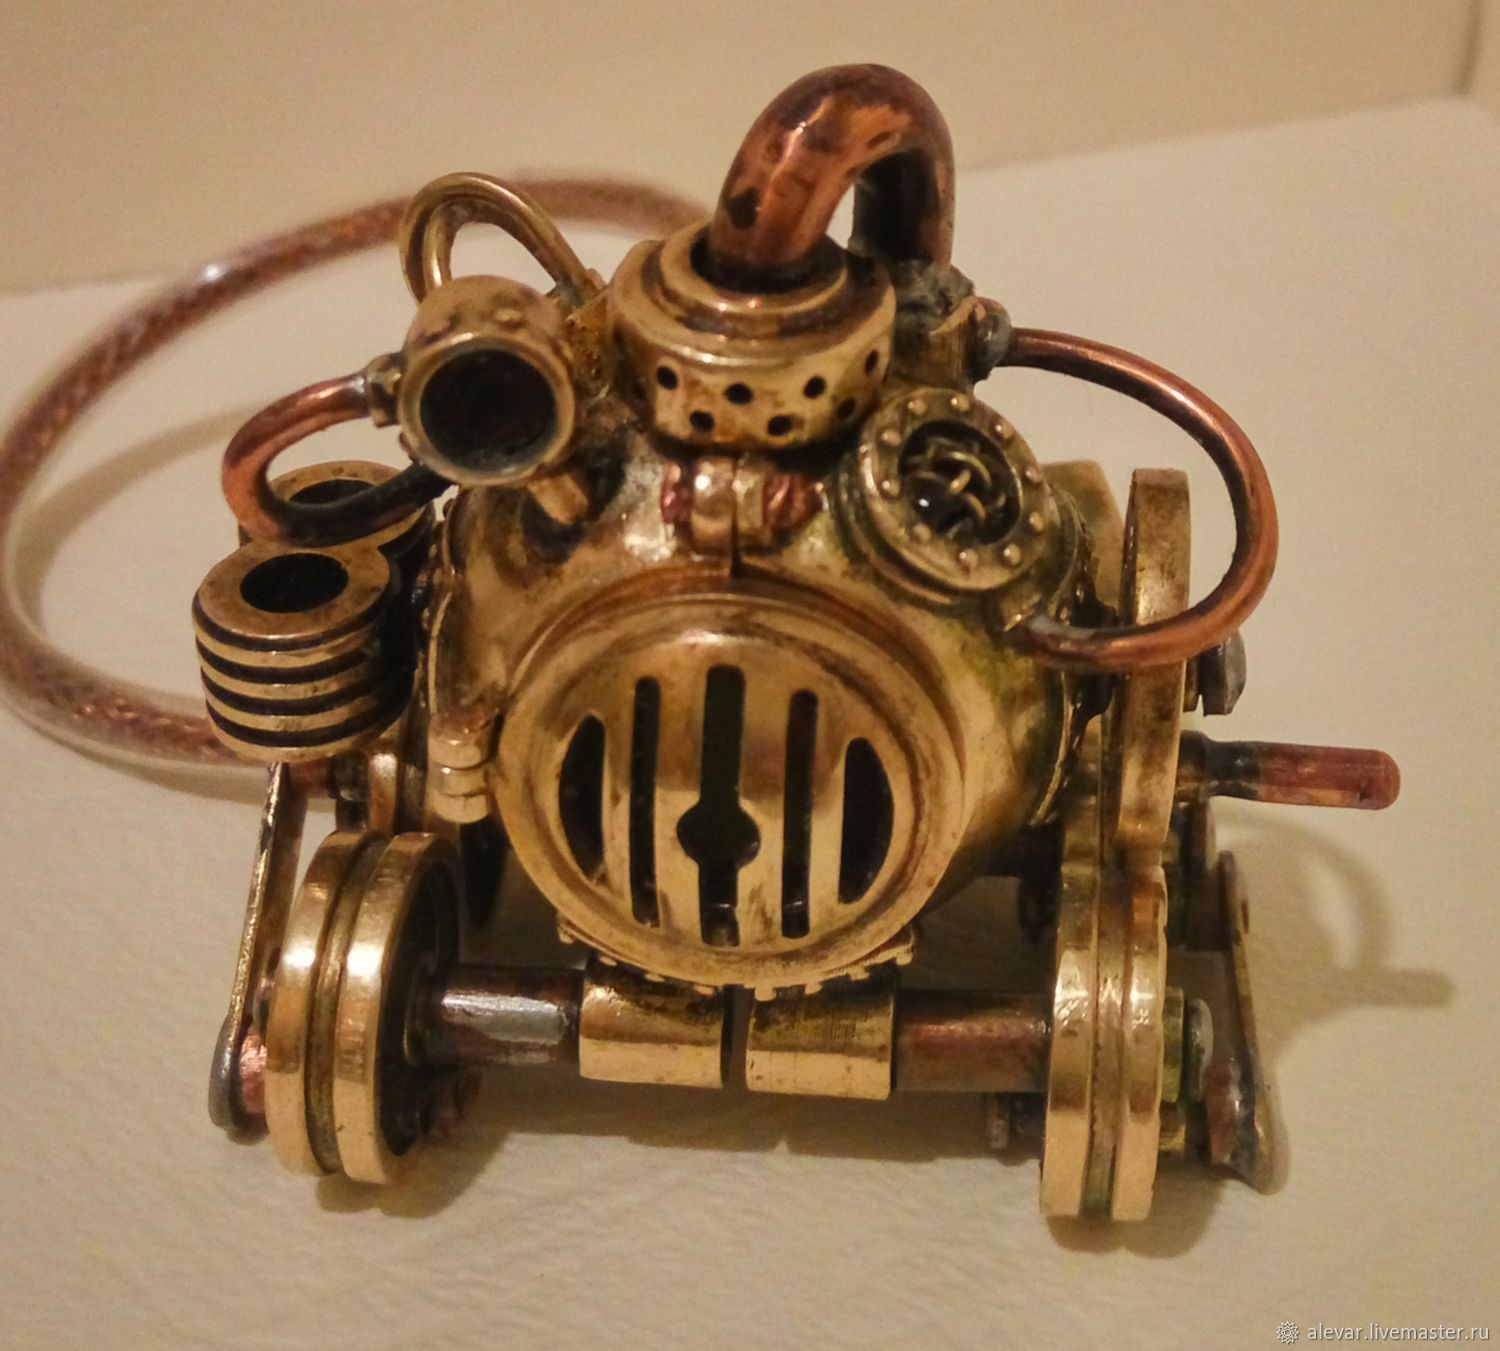 USB flash drive in steampunk style 32Gb, Subculture Attributes, Moscow,  Фото №1